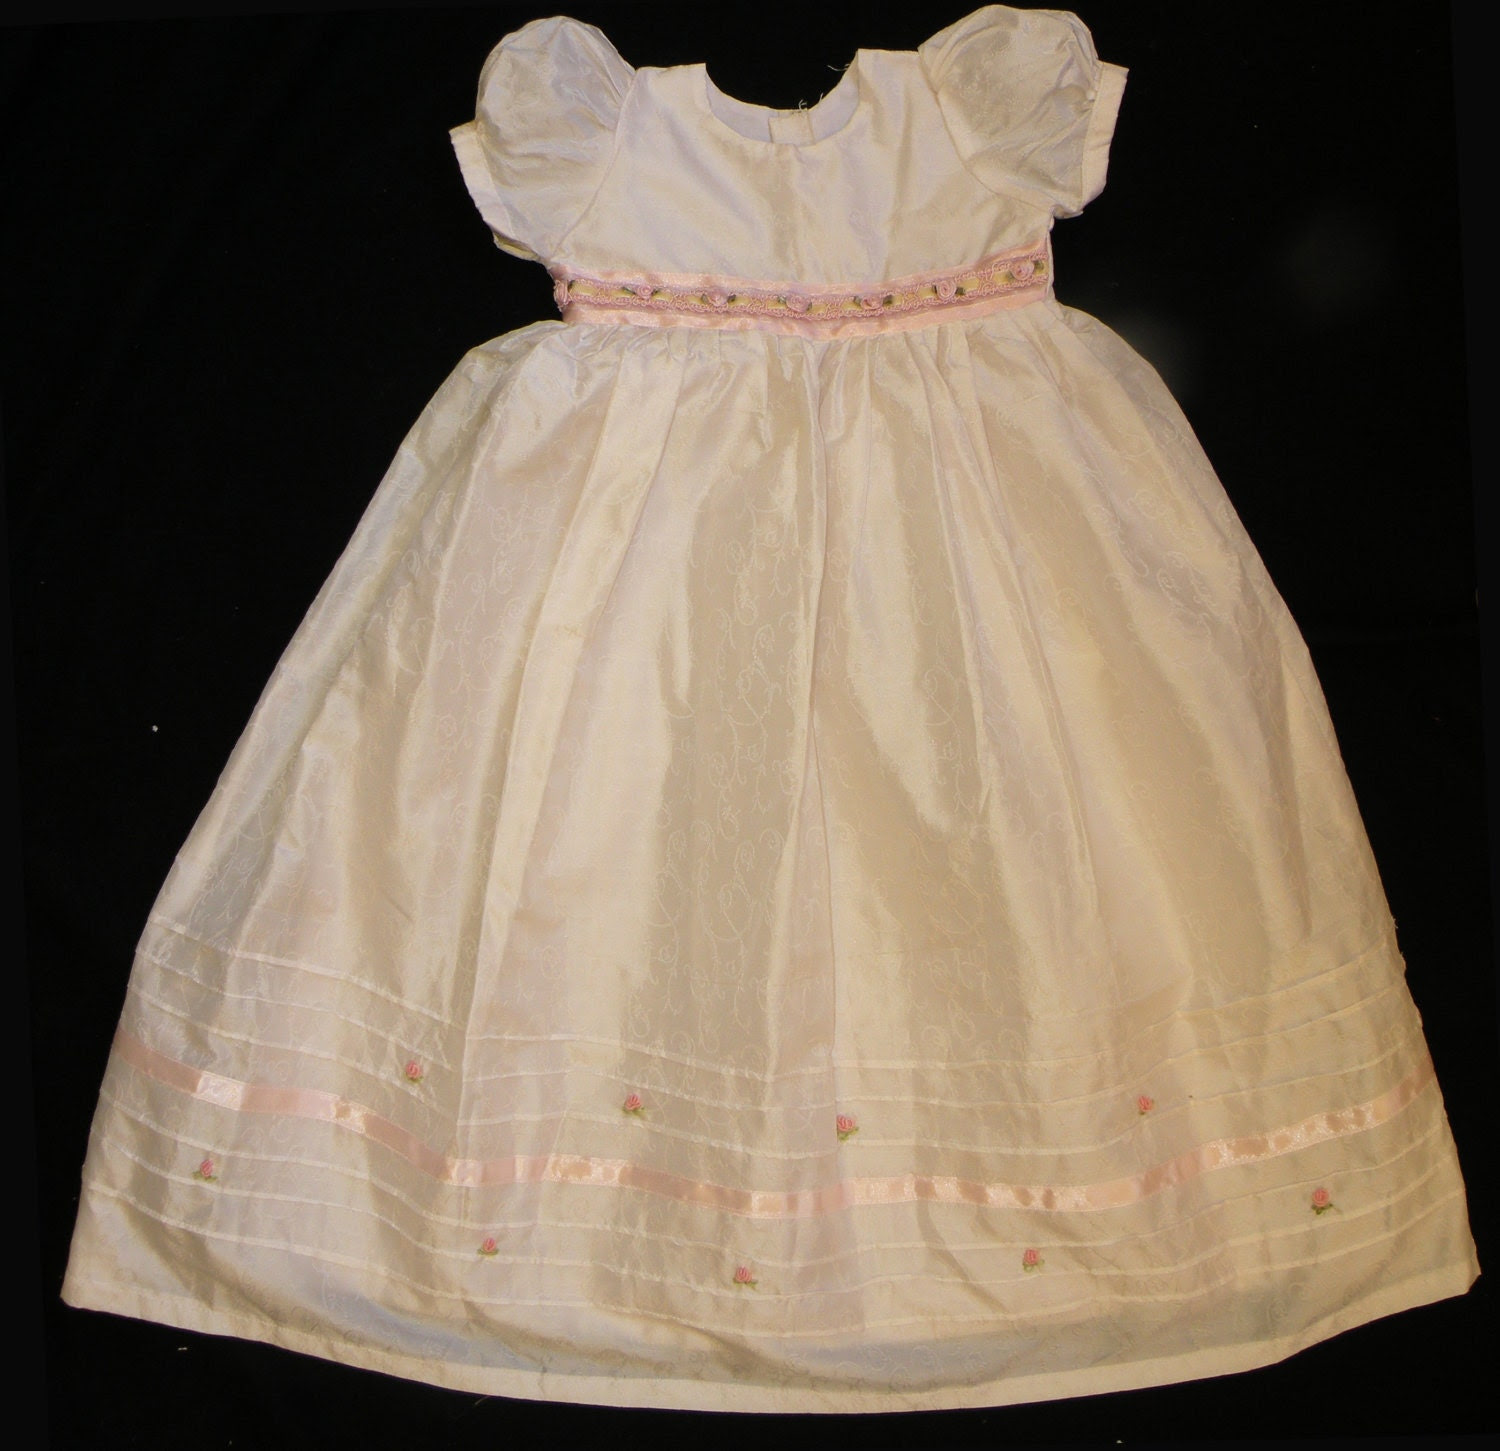 HIGH QUALITY Silk Christening, Christening Gown, Christening Dress, Blessing Gown, with Ribbon Embroidered Lace and Bonnet 6 MONTHS